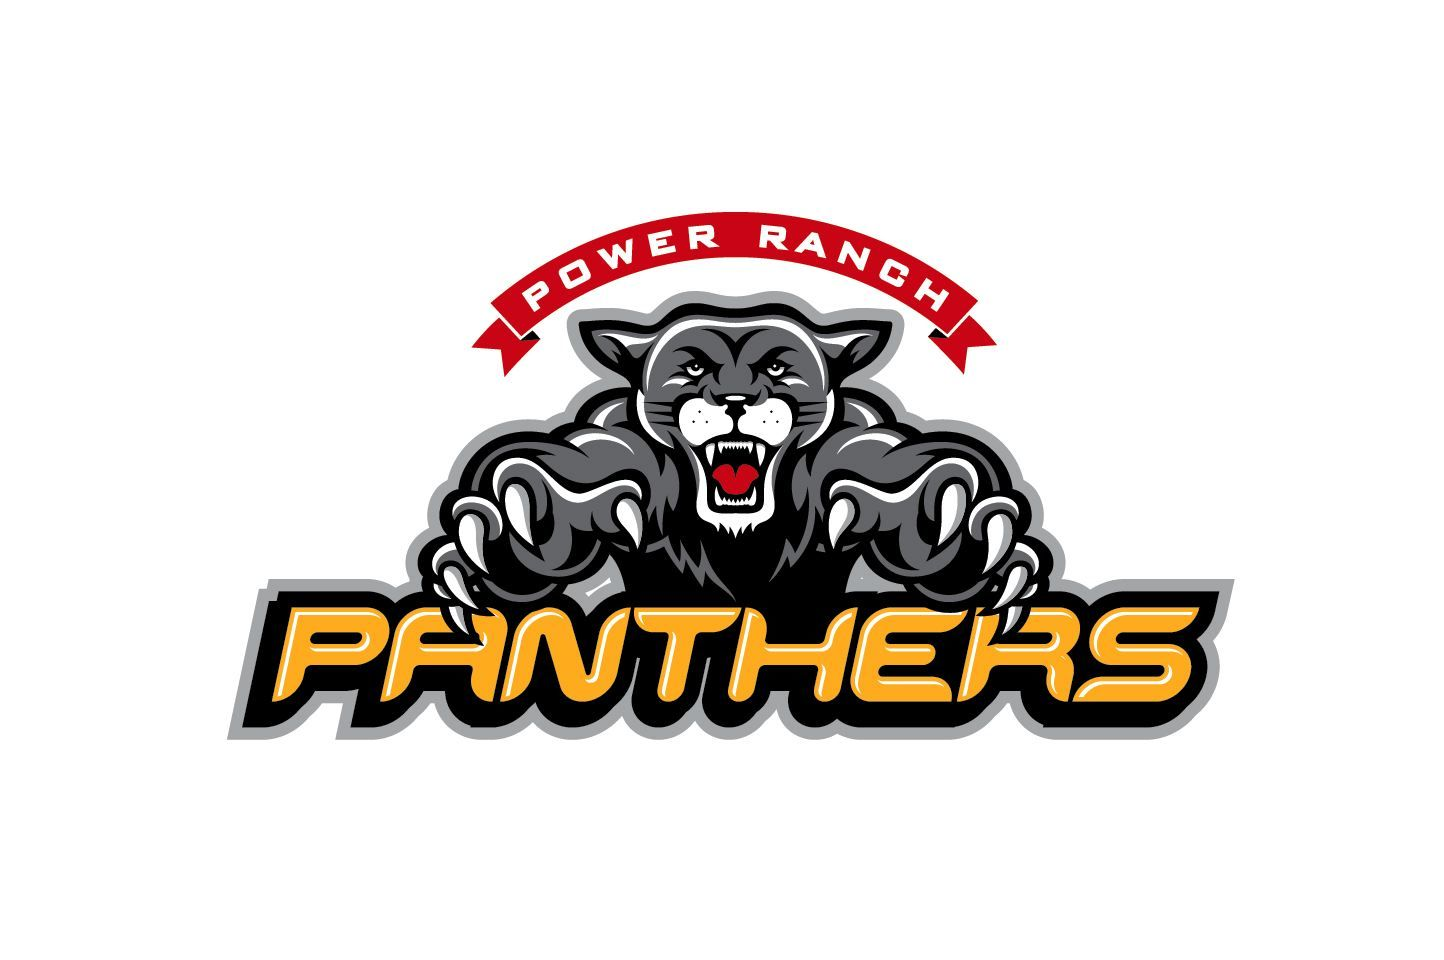 power ranch elementary middle school panthers mascot logo